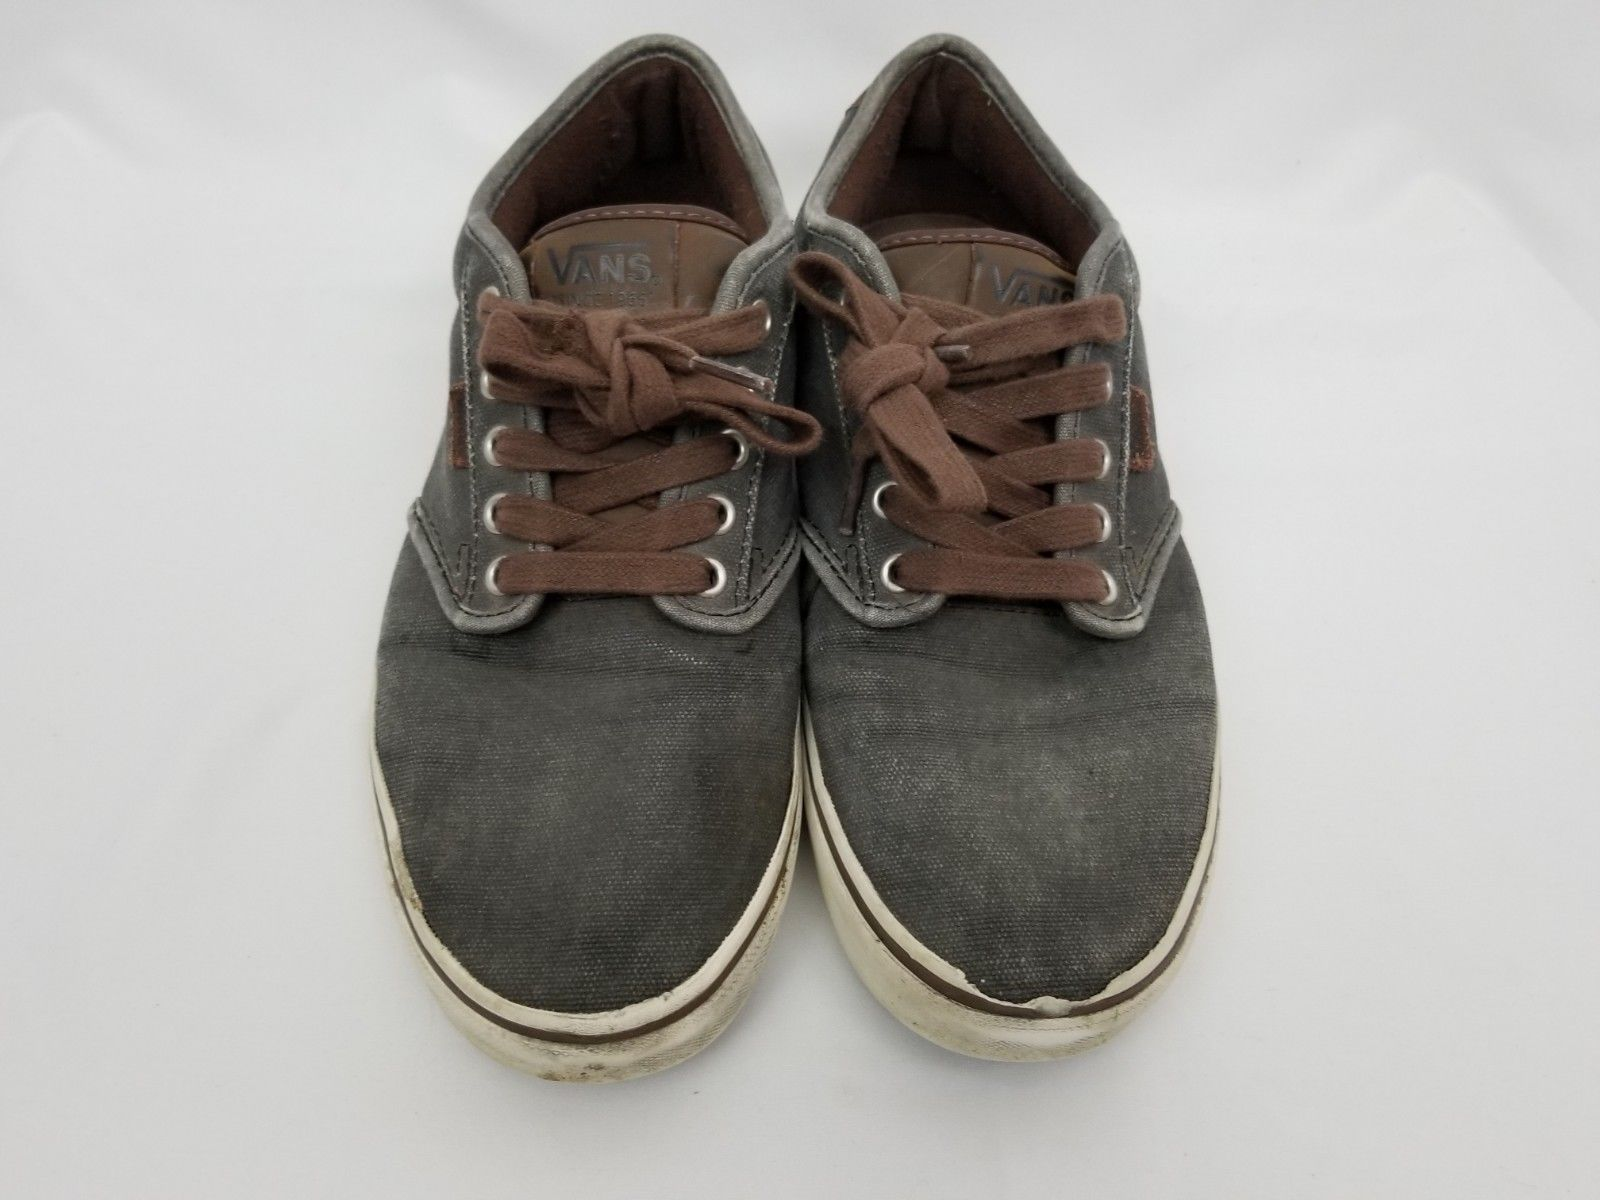 Primary image for Mens Size 10 Gray Brown Vans Sneakers Shoes Lace Up 721356